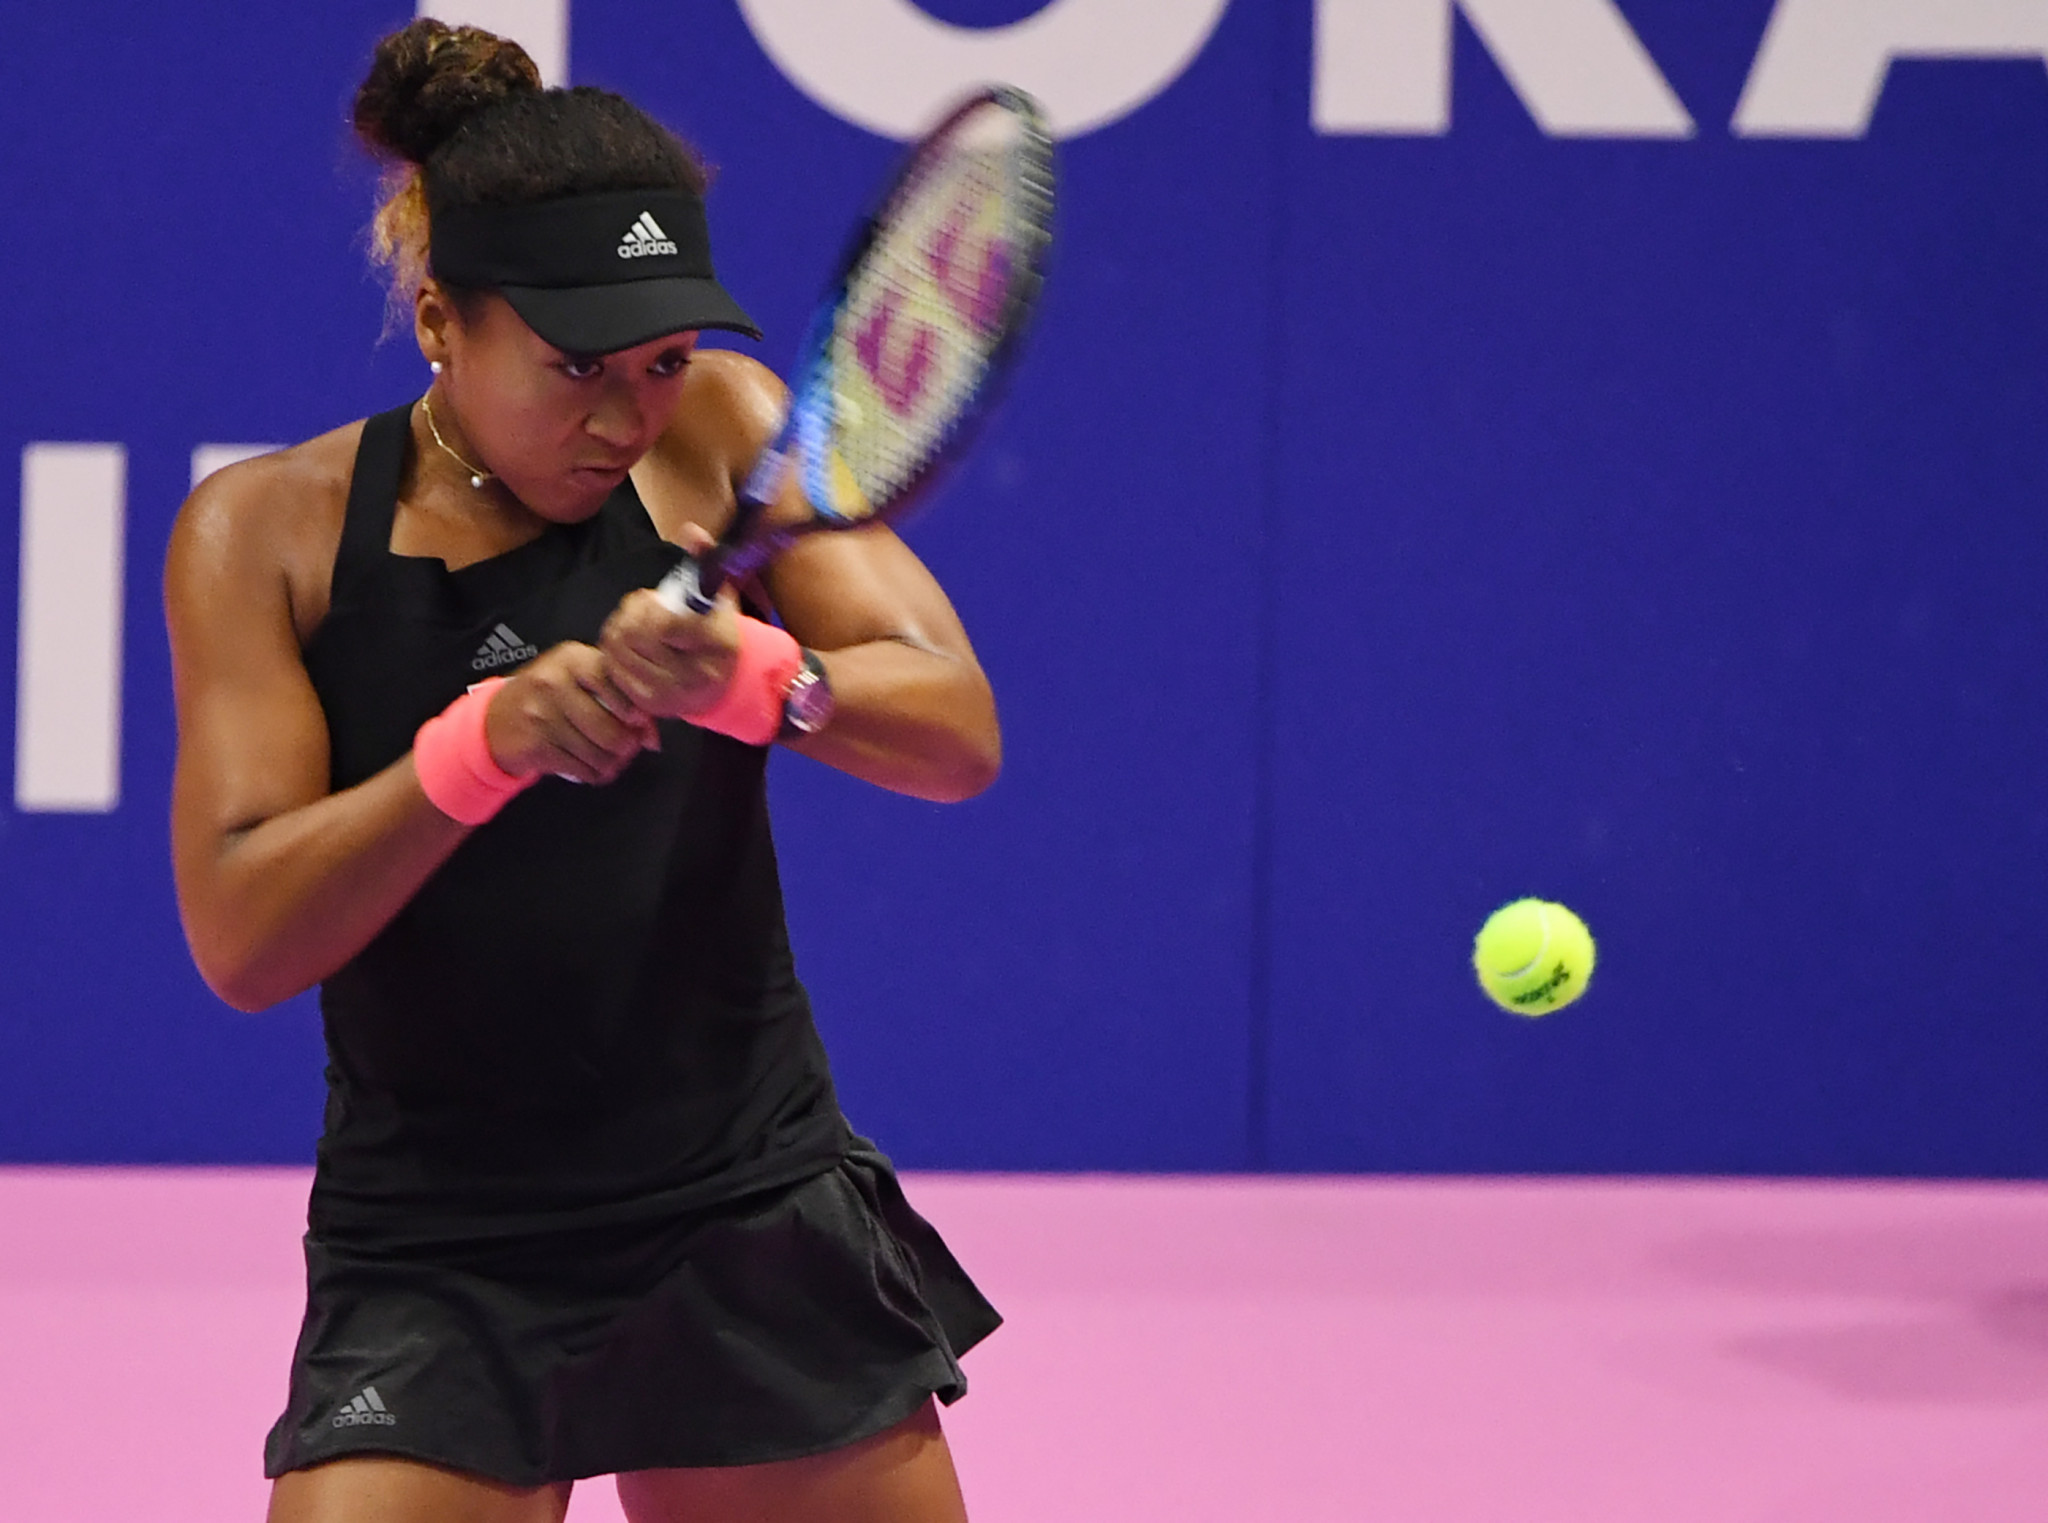 US Open champion Osaka continues win streak to reach Pan Pacific Open final